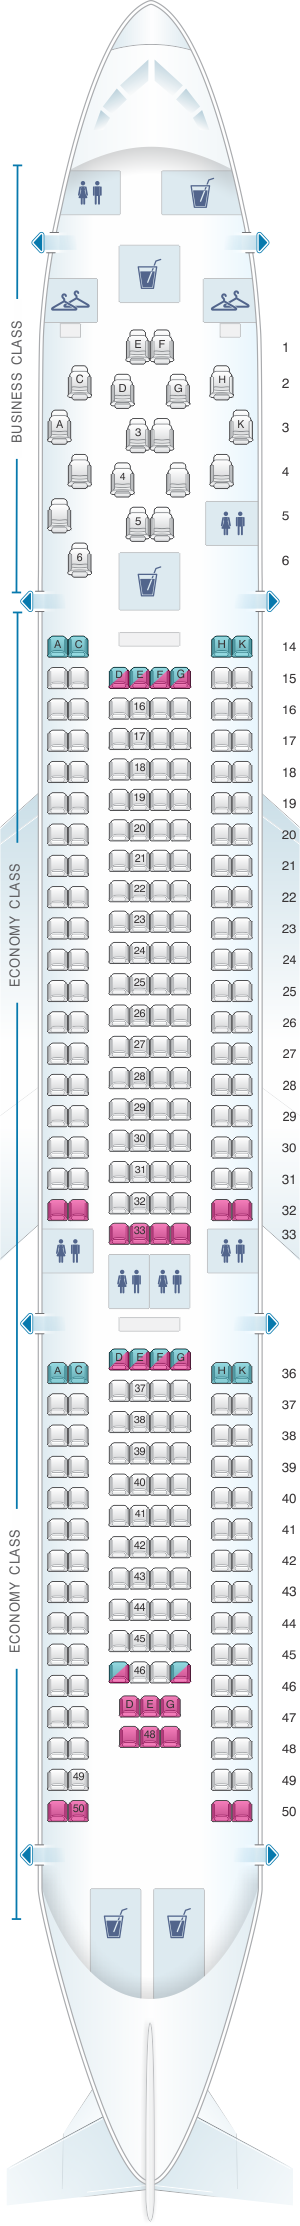 Seat map for Virgin Atlantic Airbus A330 200